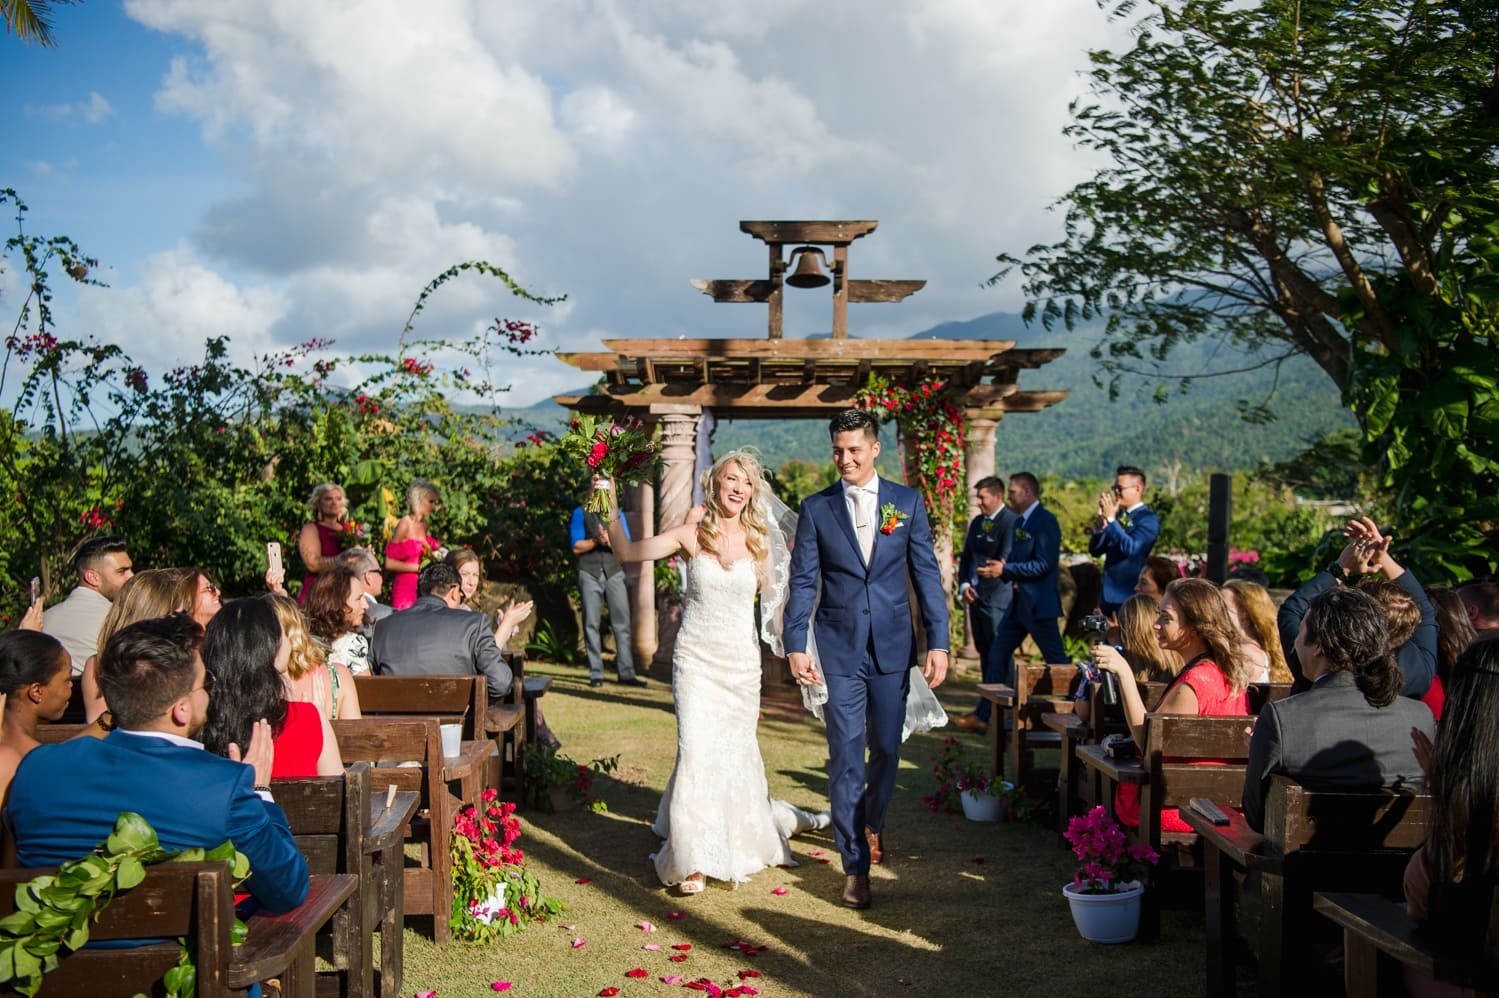 Puerto Rico destination wedding photography at Hacienda Siesta Alegre by Camille Fontz